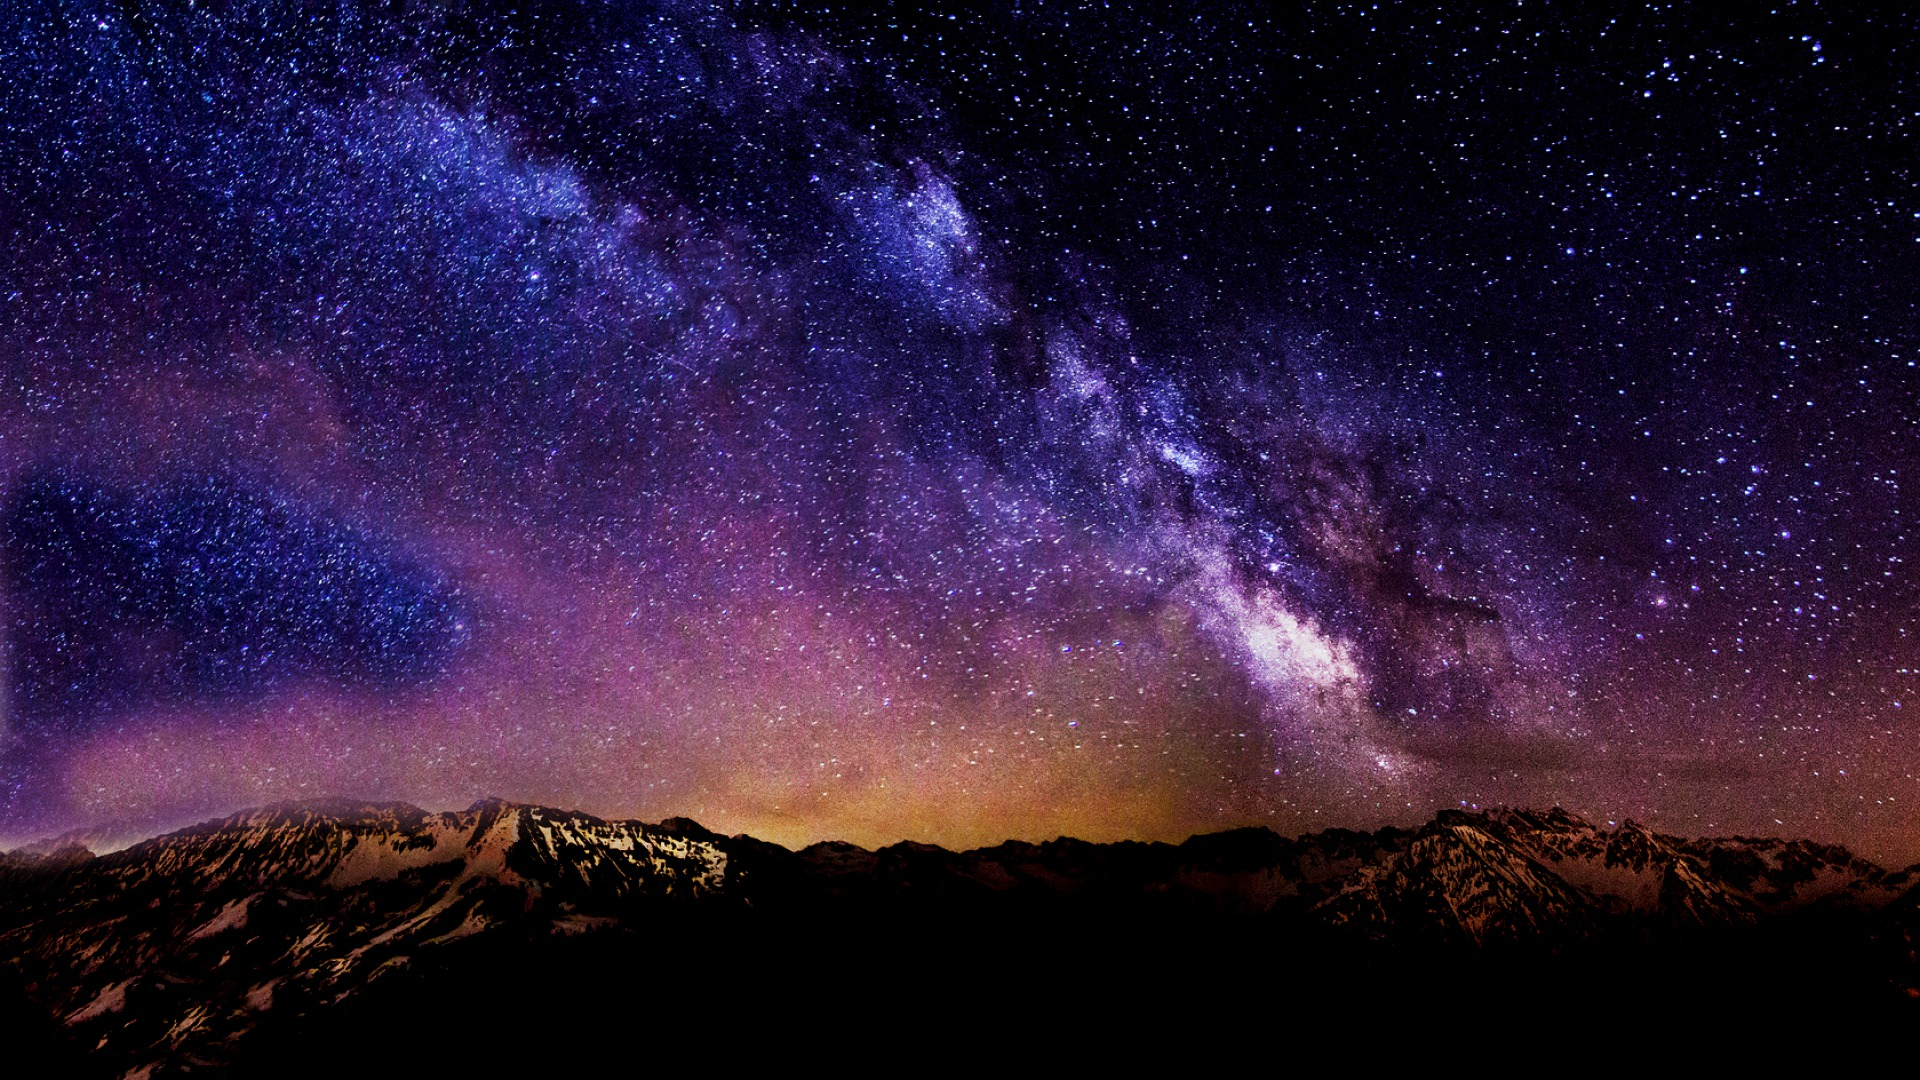 Night Sky Background Wallpaper - WallpaperSafari